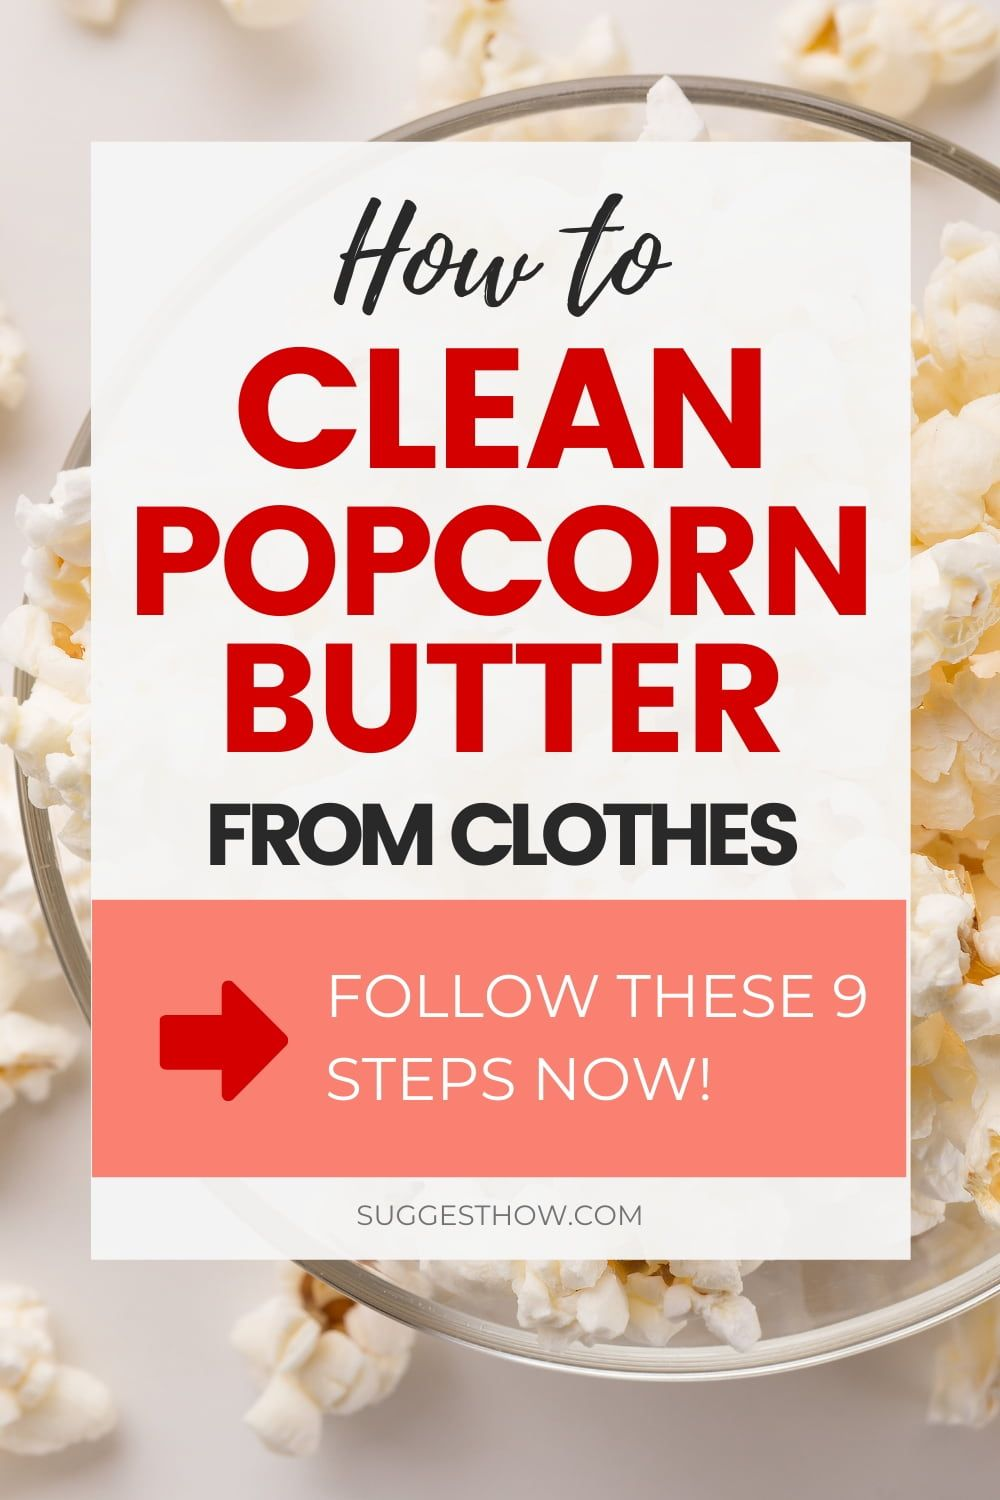 3831c06ba5a9fbb49e5b670a5bce1132 - How To Get Popcorn Butter Stains Out Of Clothes